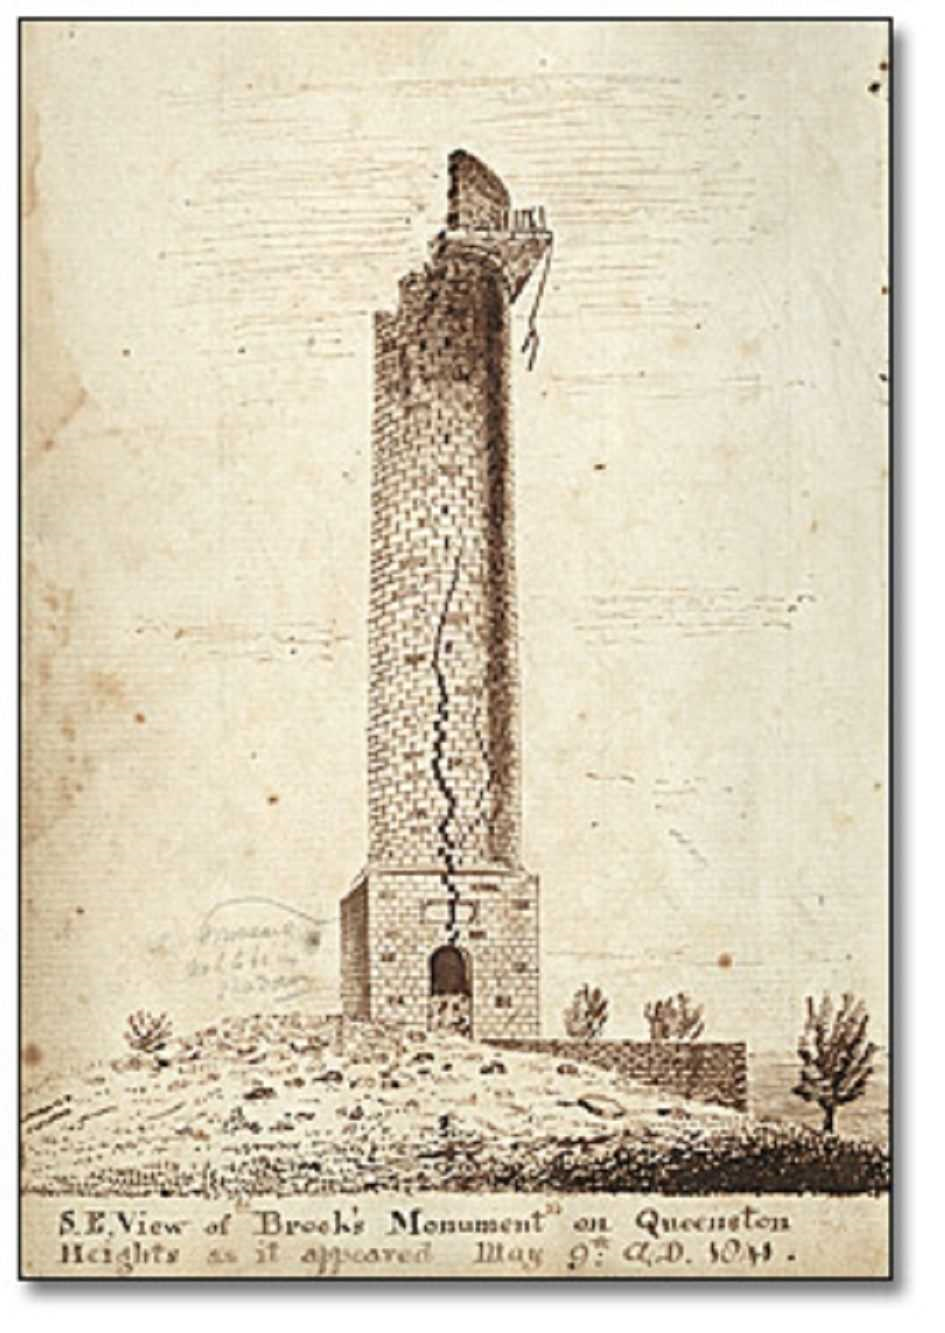 Brock's Monument, Queenston Heights, Ontario, Canada. Niagara Falls Public Library, Record ID 89768. Wikimedia Commons.